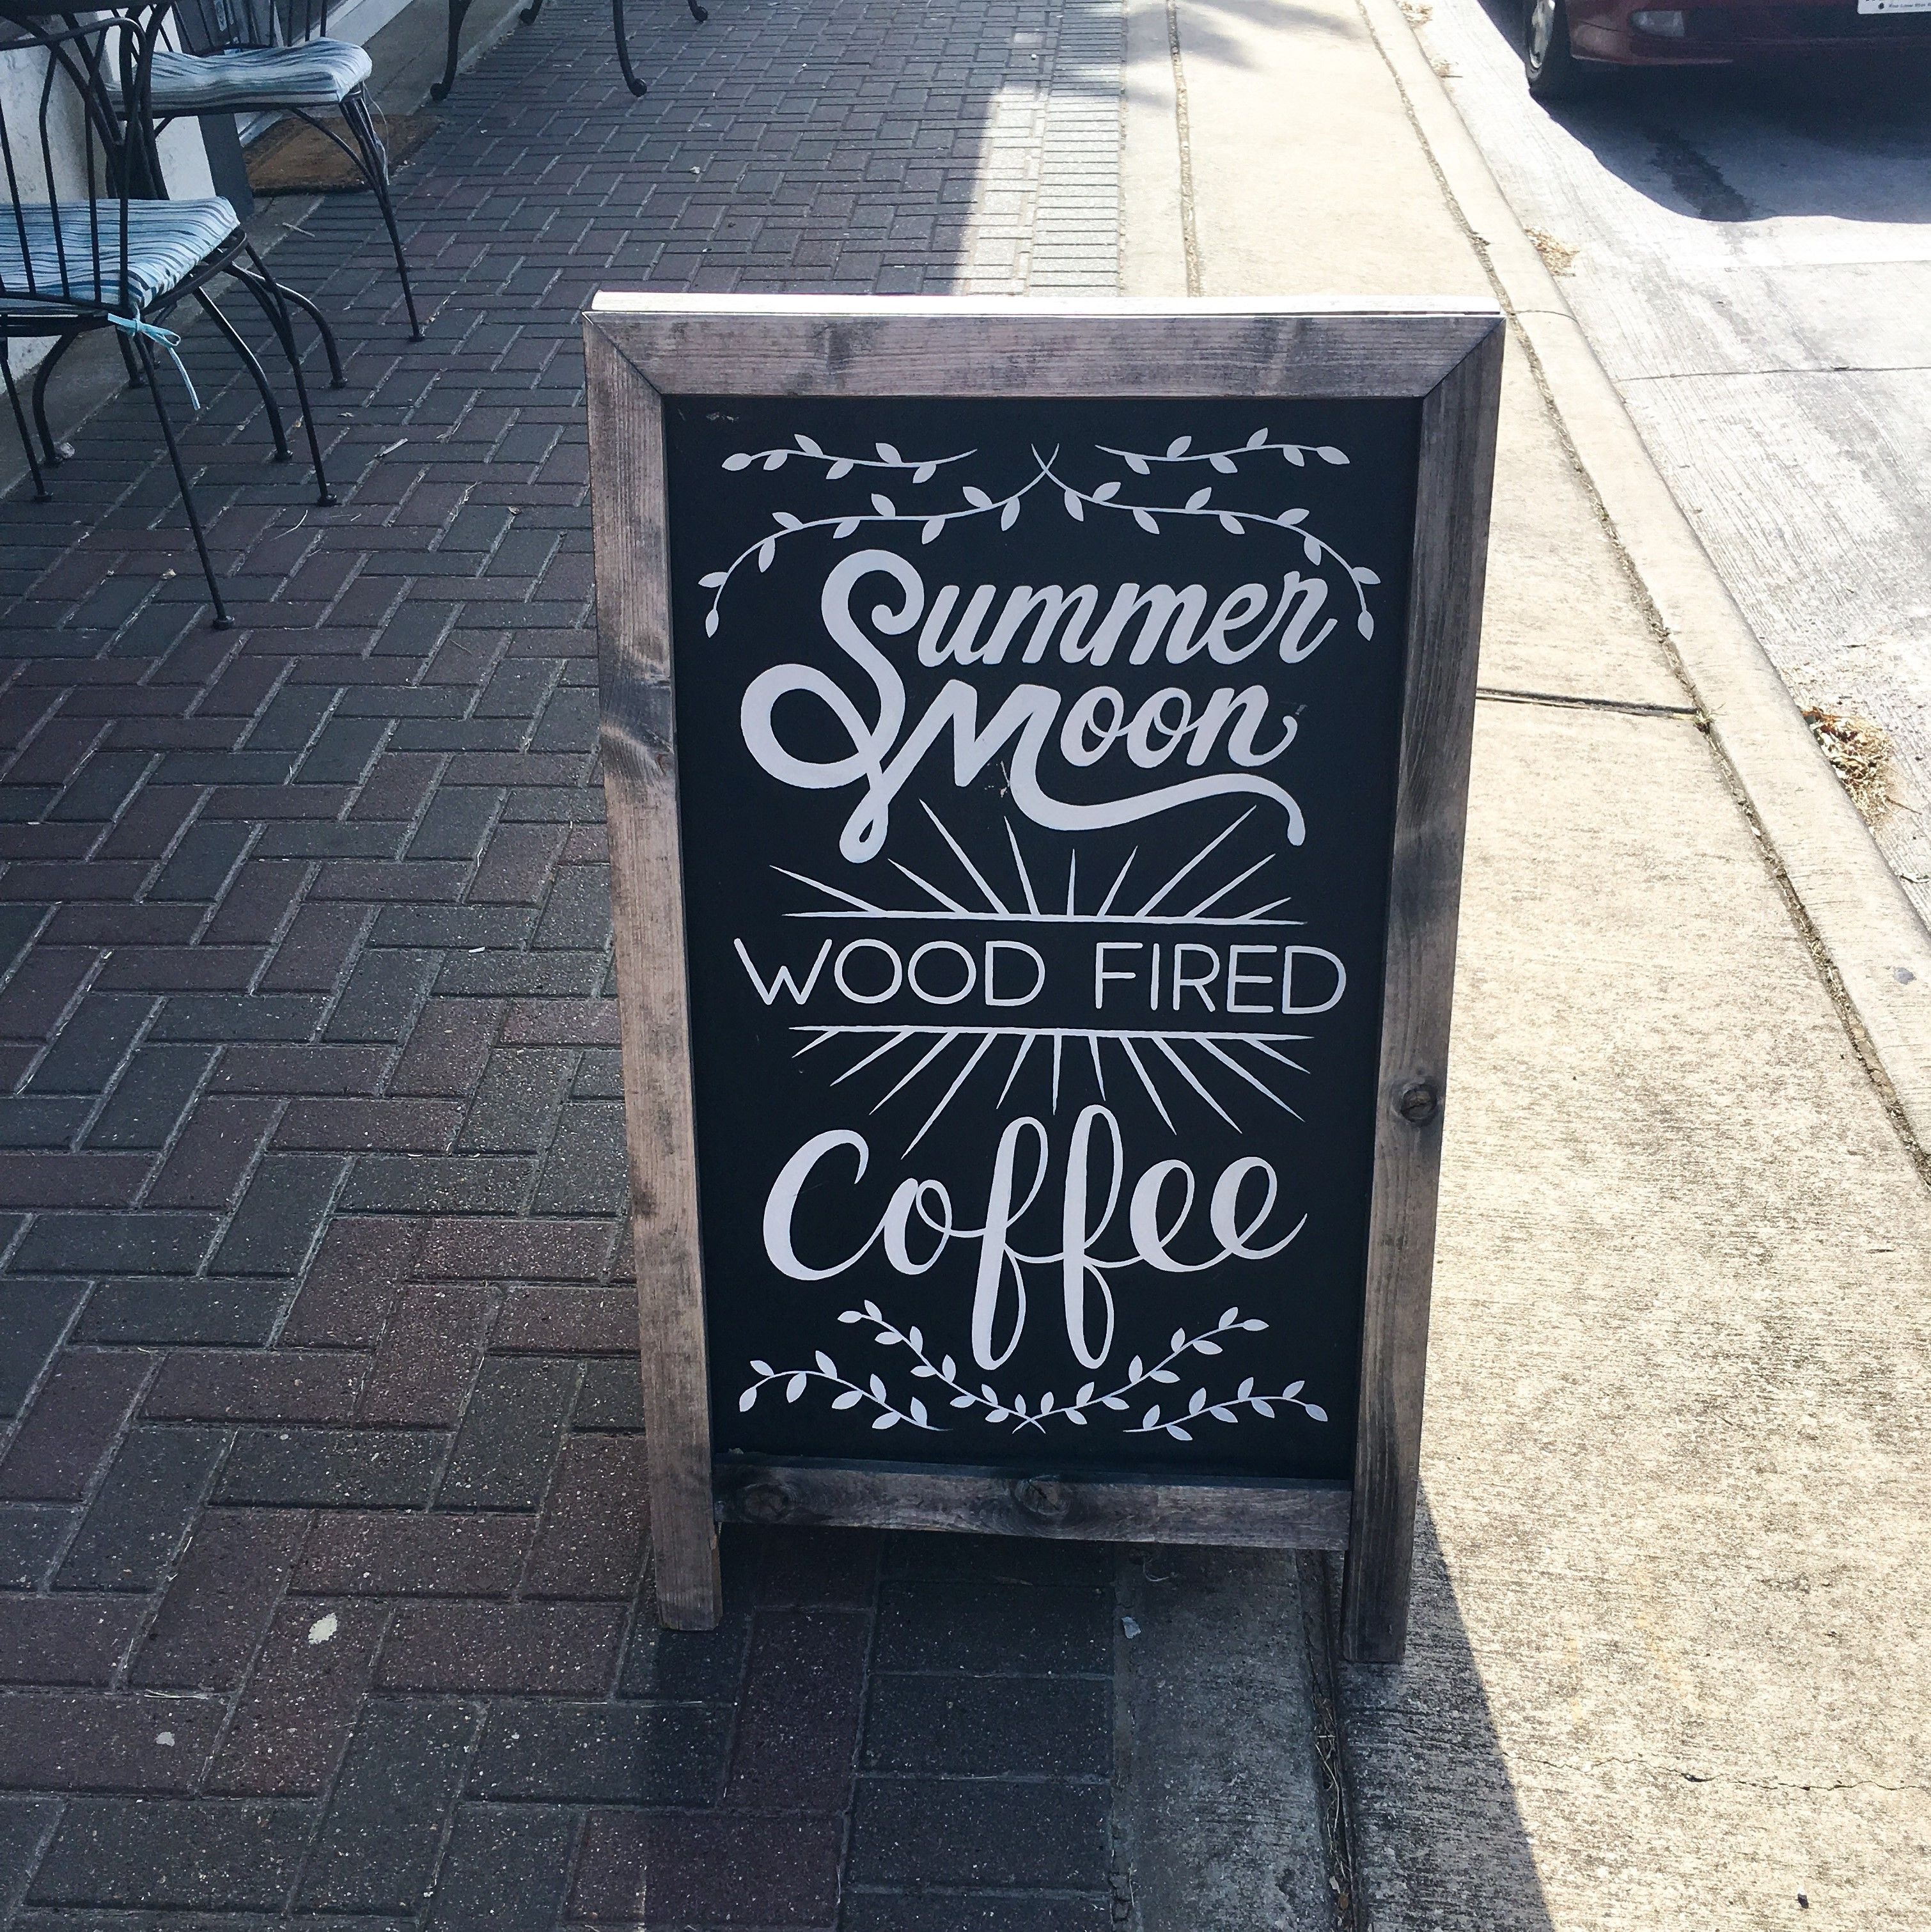 Pin by Food Gavel on Frisco Restaurant Atmosphere Coffee